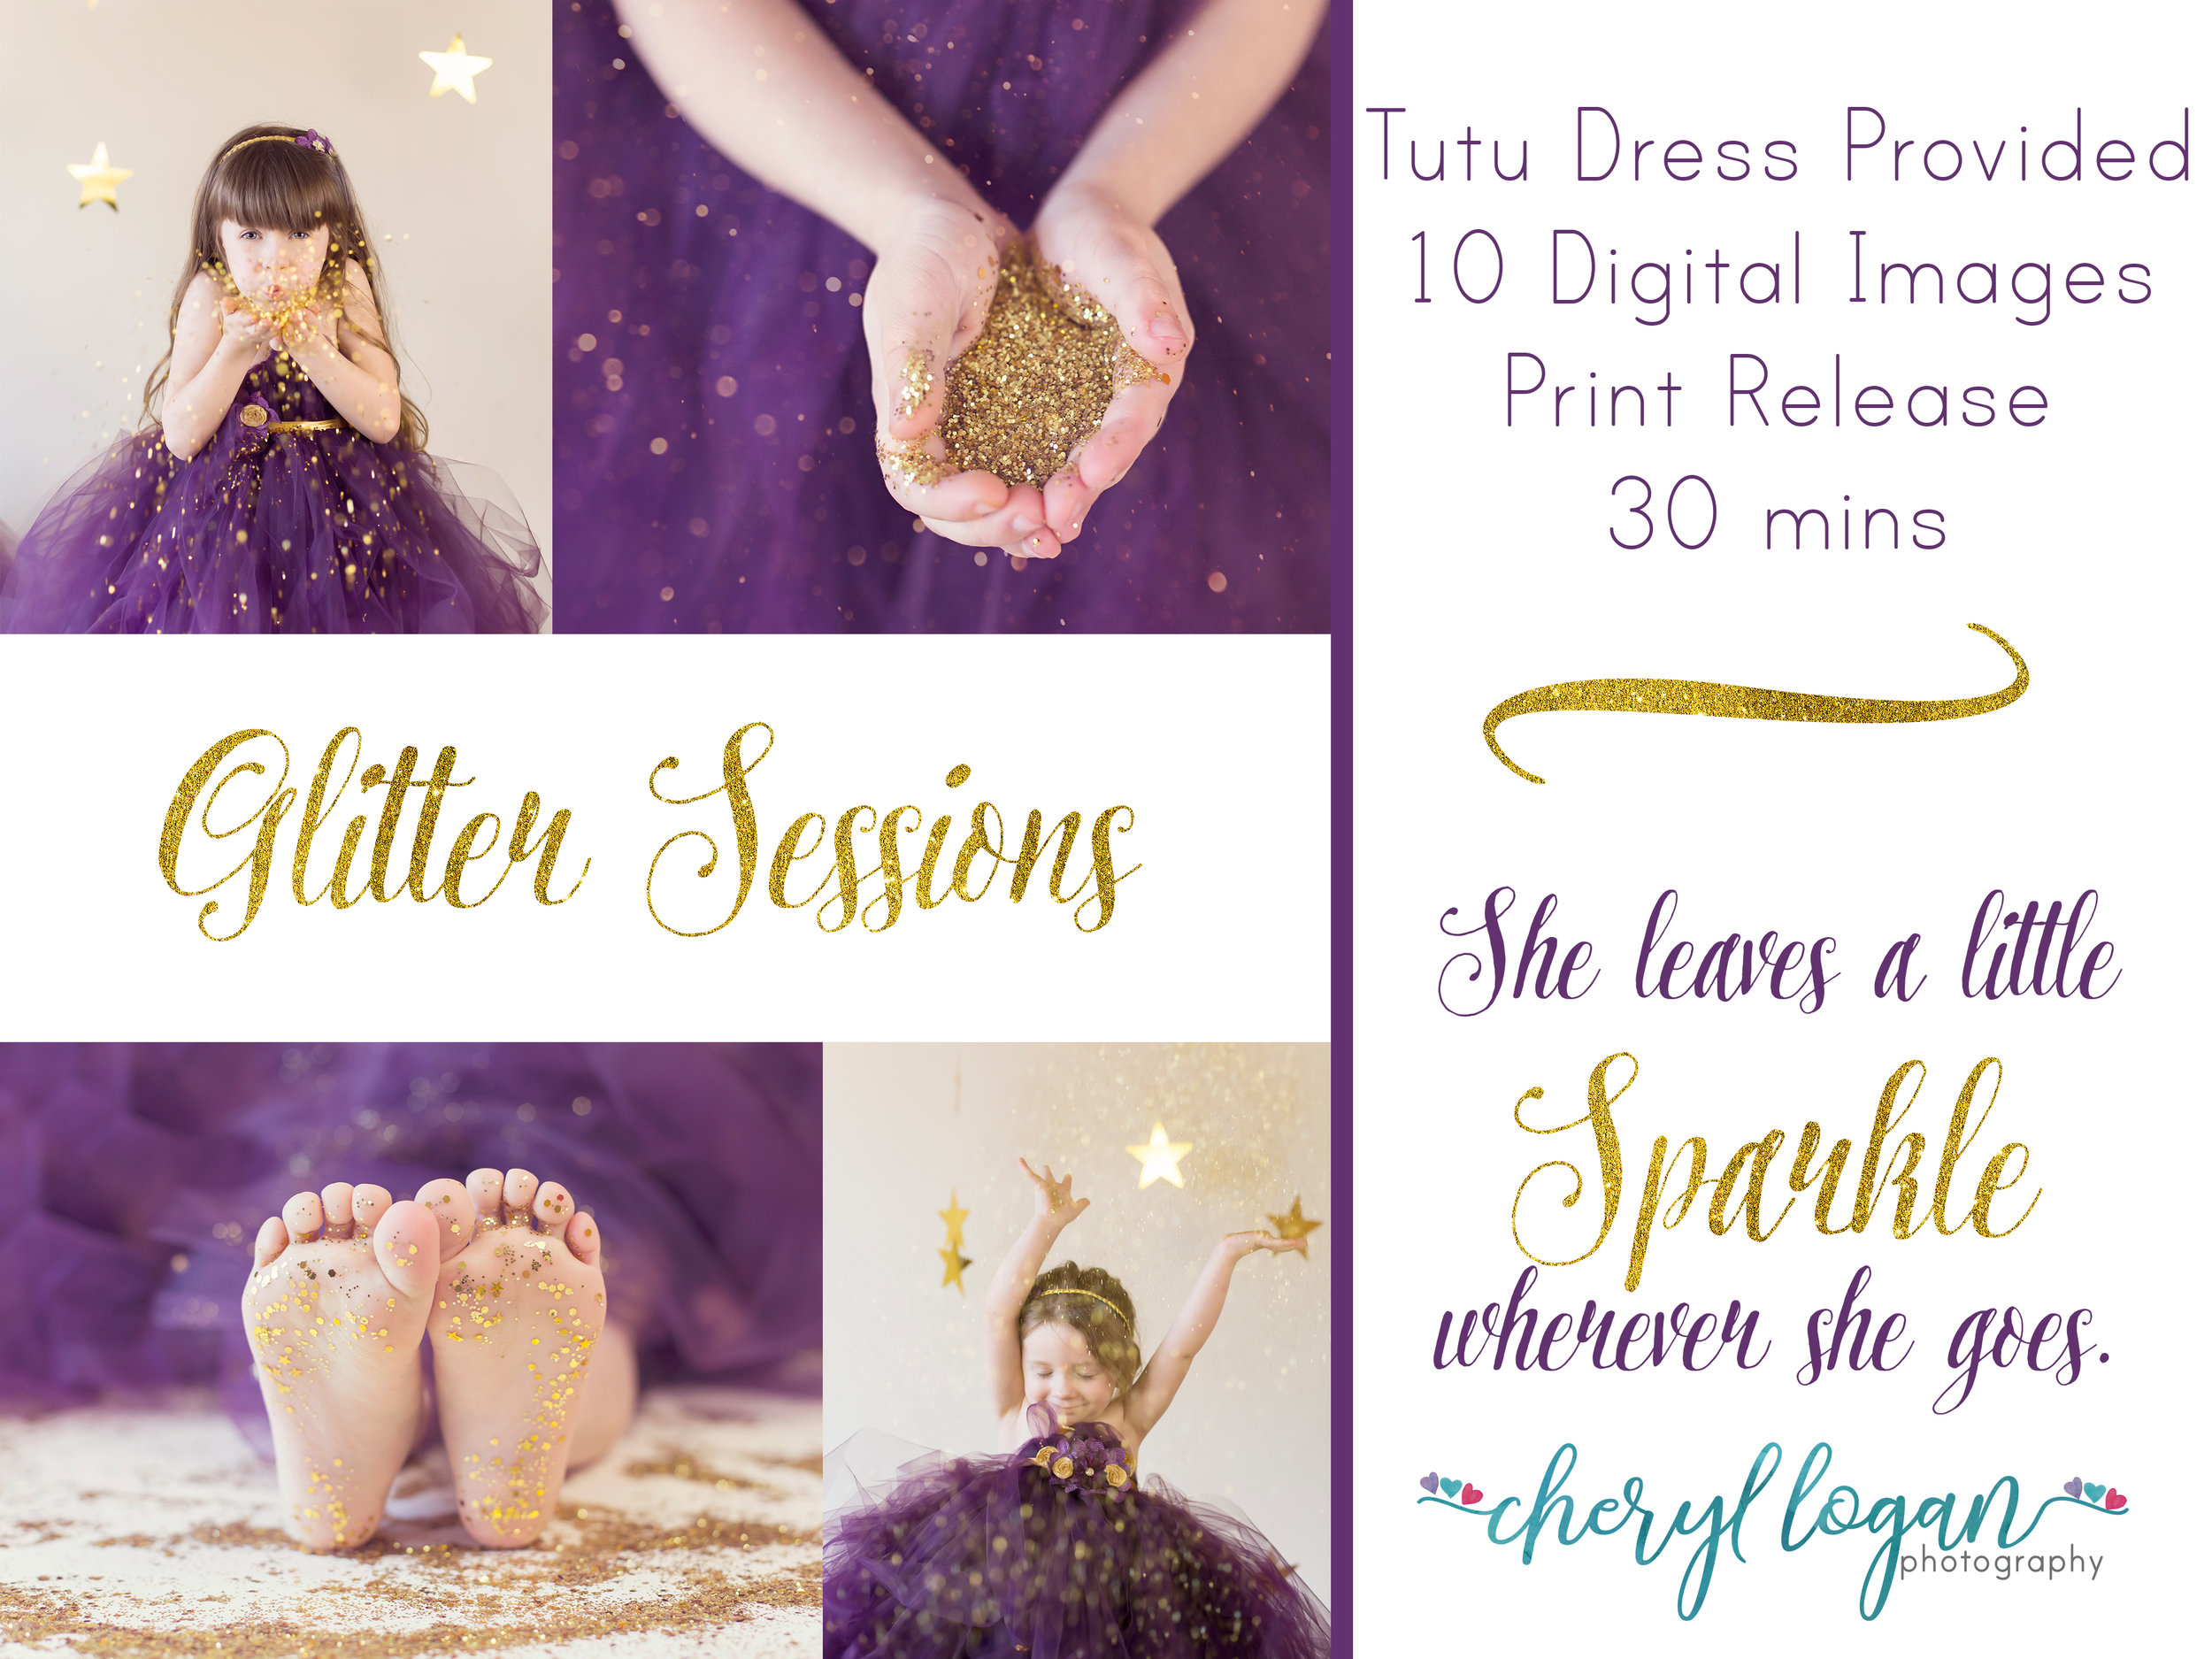 Glitter Minis - Glitter minis are magical! Your little one will get to play in glitter while dressed like a princess! (Large Grain and Confetti Sized for Safety). I have a variety of boutique dresses available.March Theme of the Month.